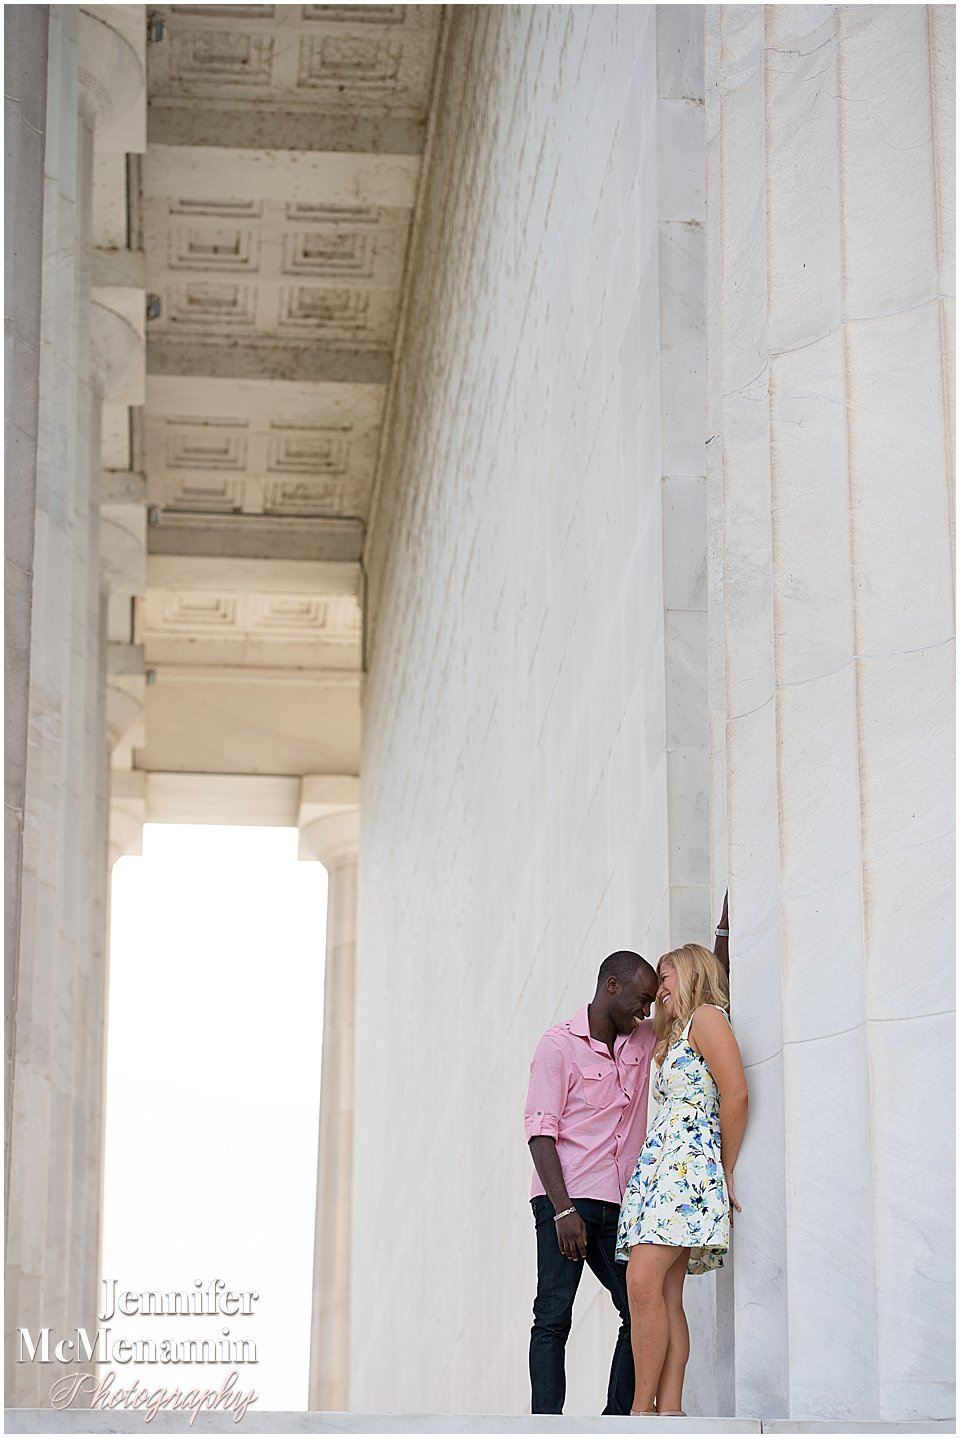 284-FrammAgorsor_00054-0009_Jennifer-McMenamin-Photography-DC-Engagement-photos